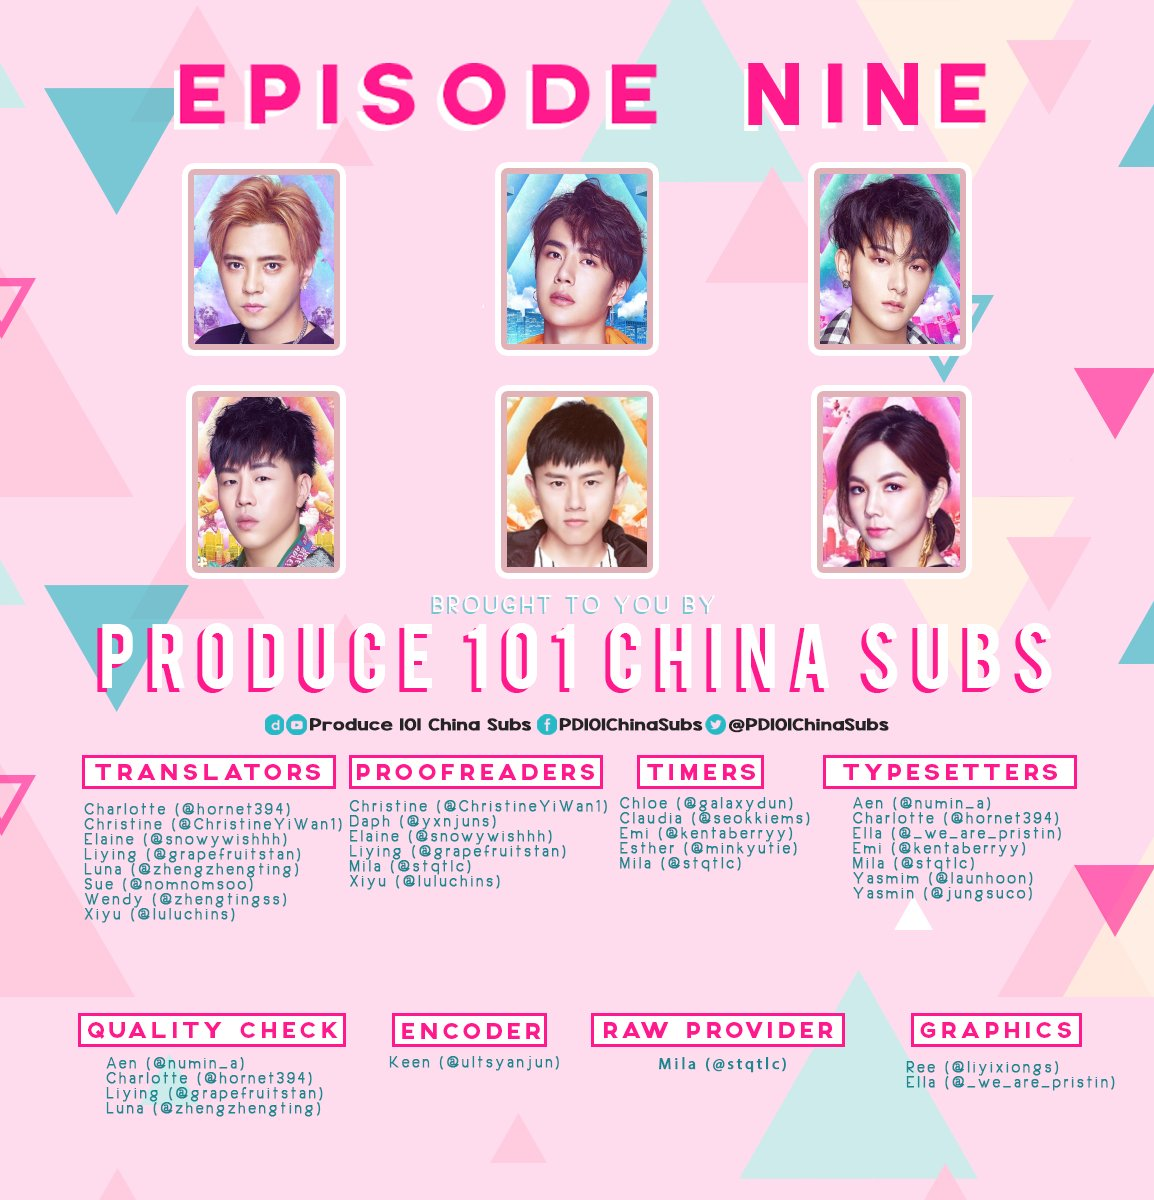 Produce 101 China Subs (@PD101ChinaSubs) | Twitter